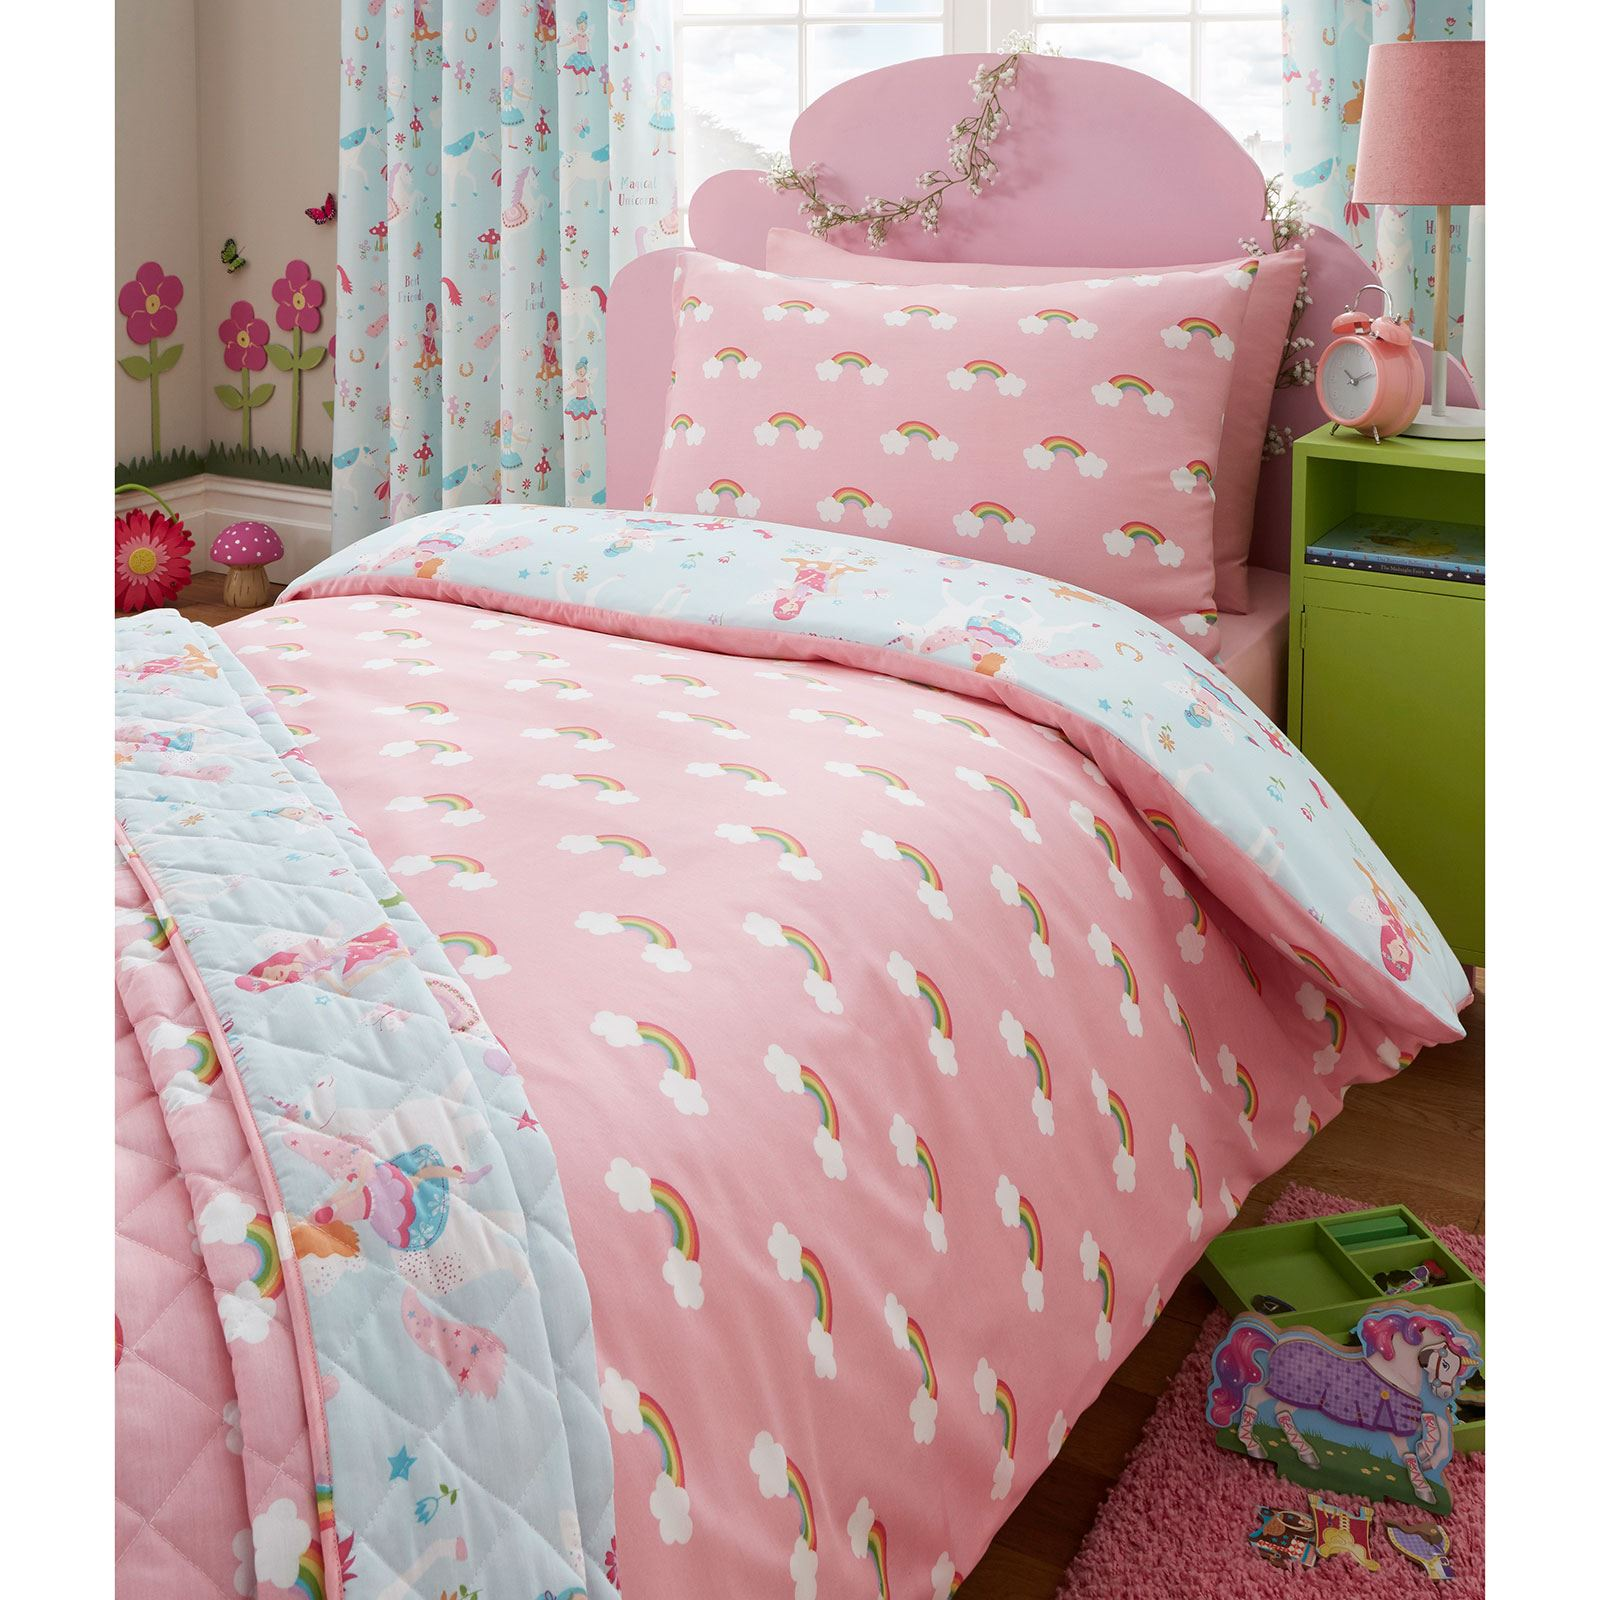 Duvet Covers & Bedding Sets Crawl into one of our finest duvet sets that will give you that luxury feel when getting into bed at night. Our range is available in versatile and stylish colours, designs and fabrics.